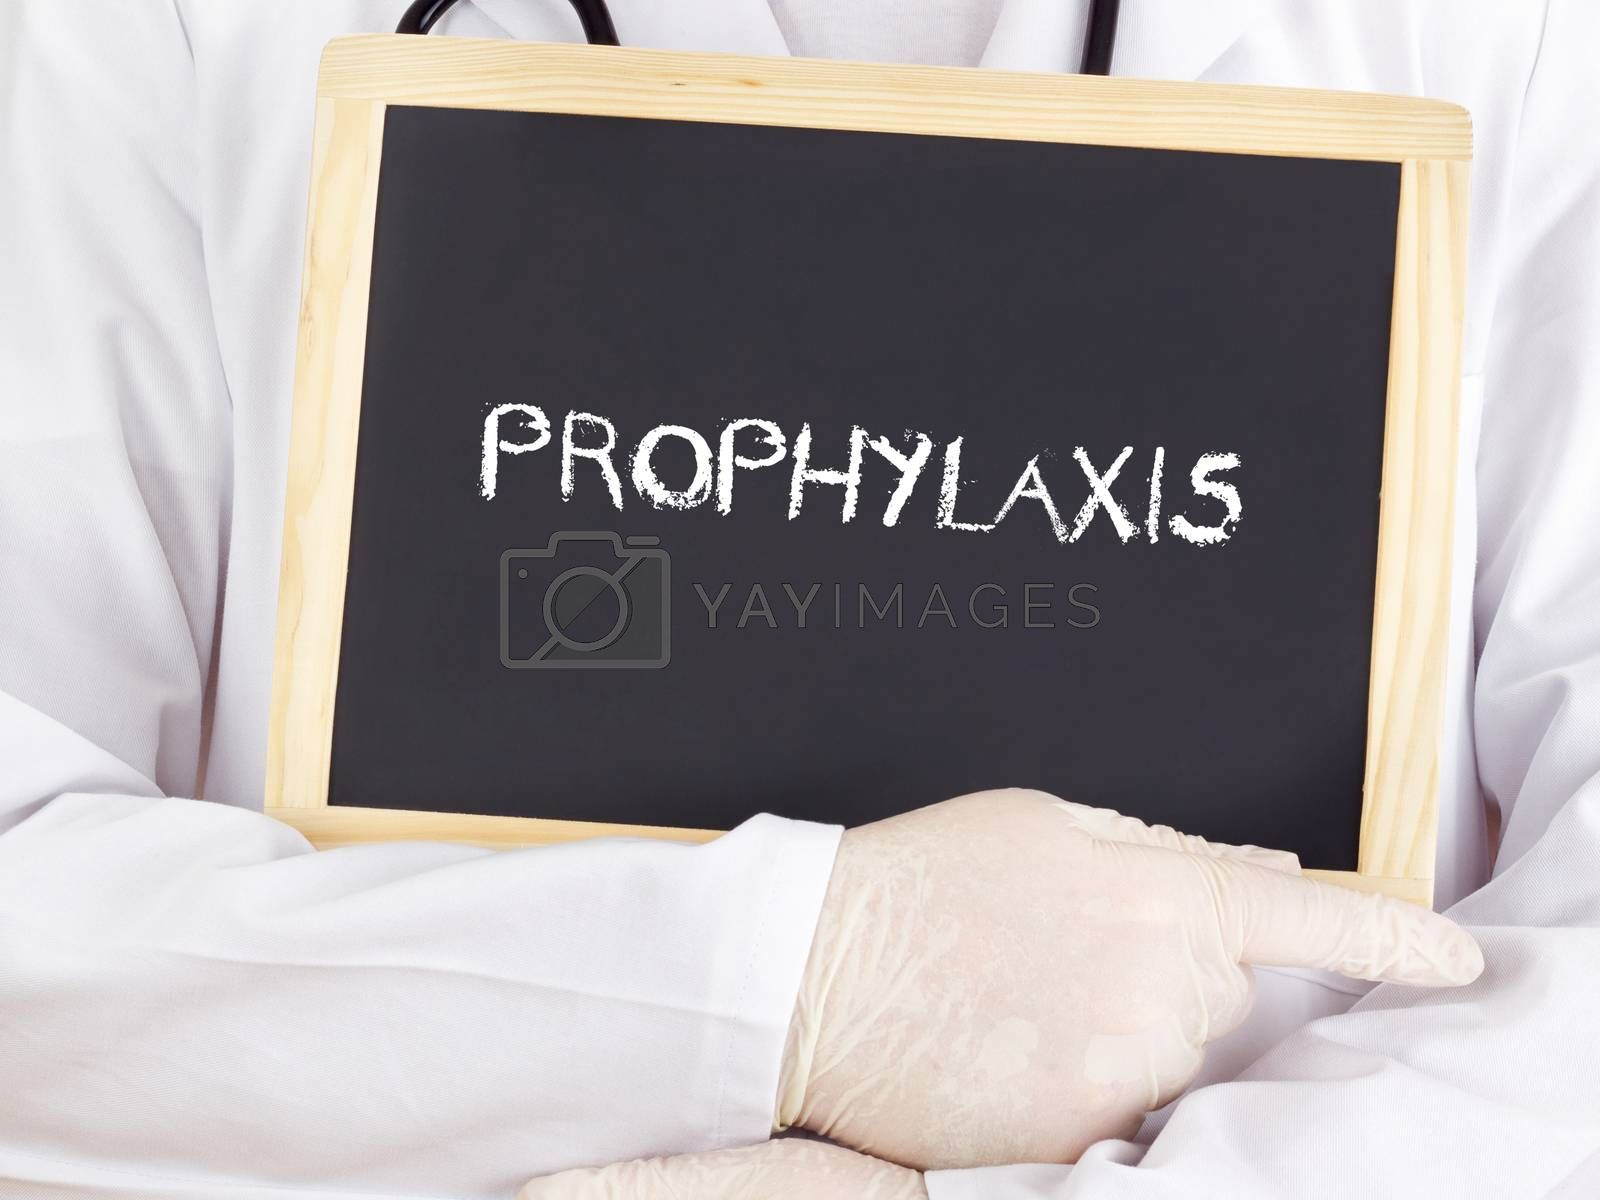 Doctor shows information on blackboard: prophylaxis